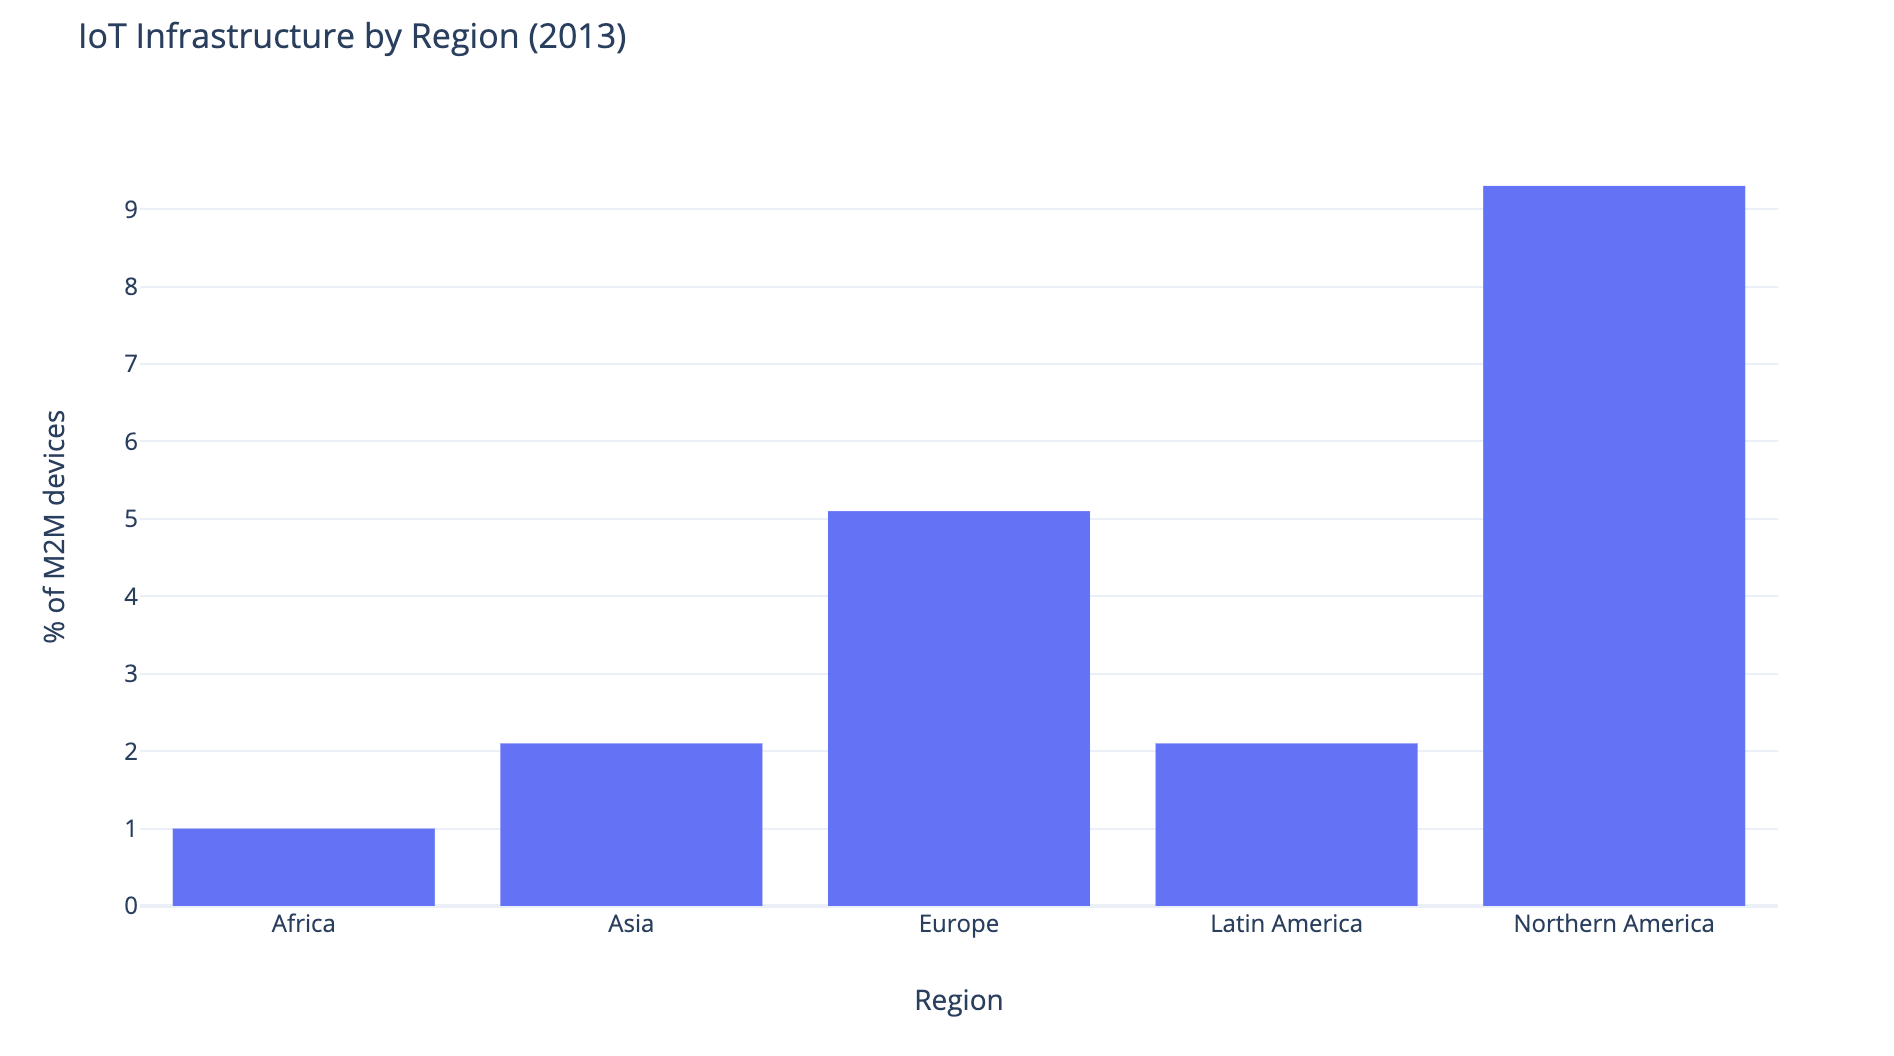 Percentage of M2M Devices Across Regions